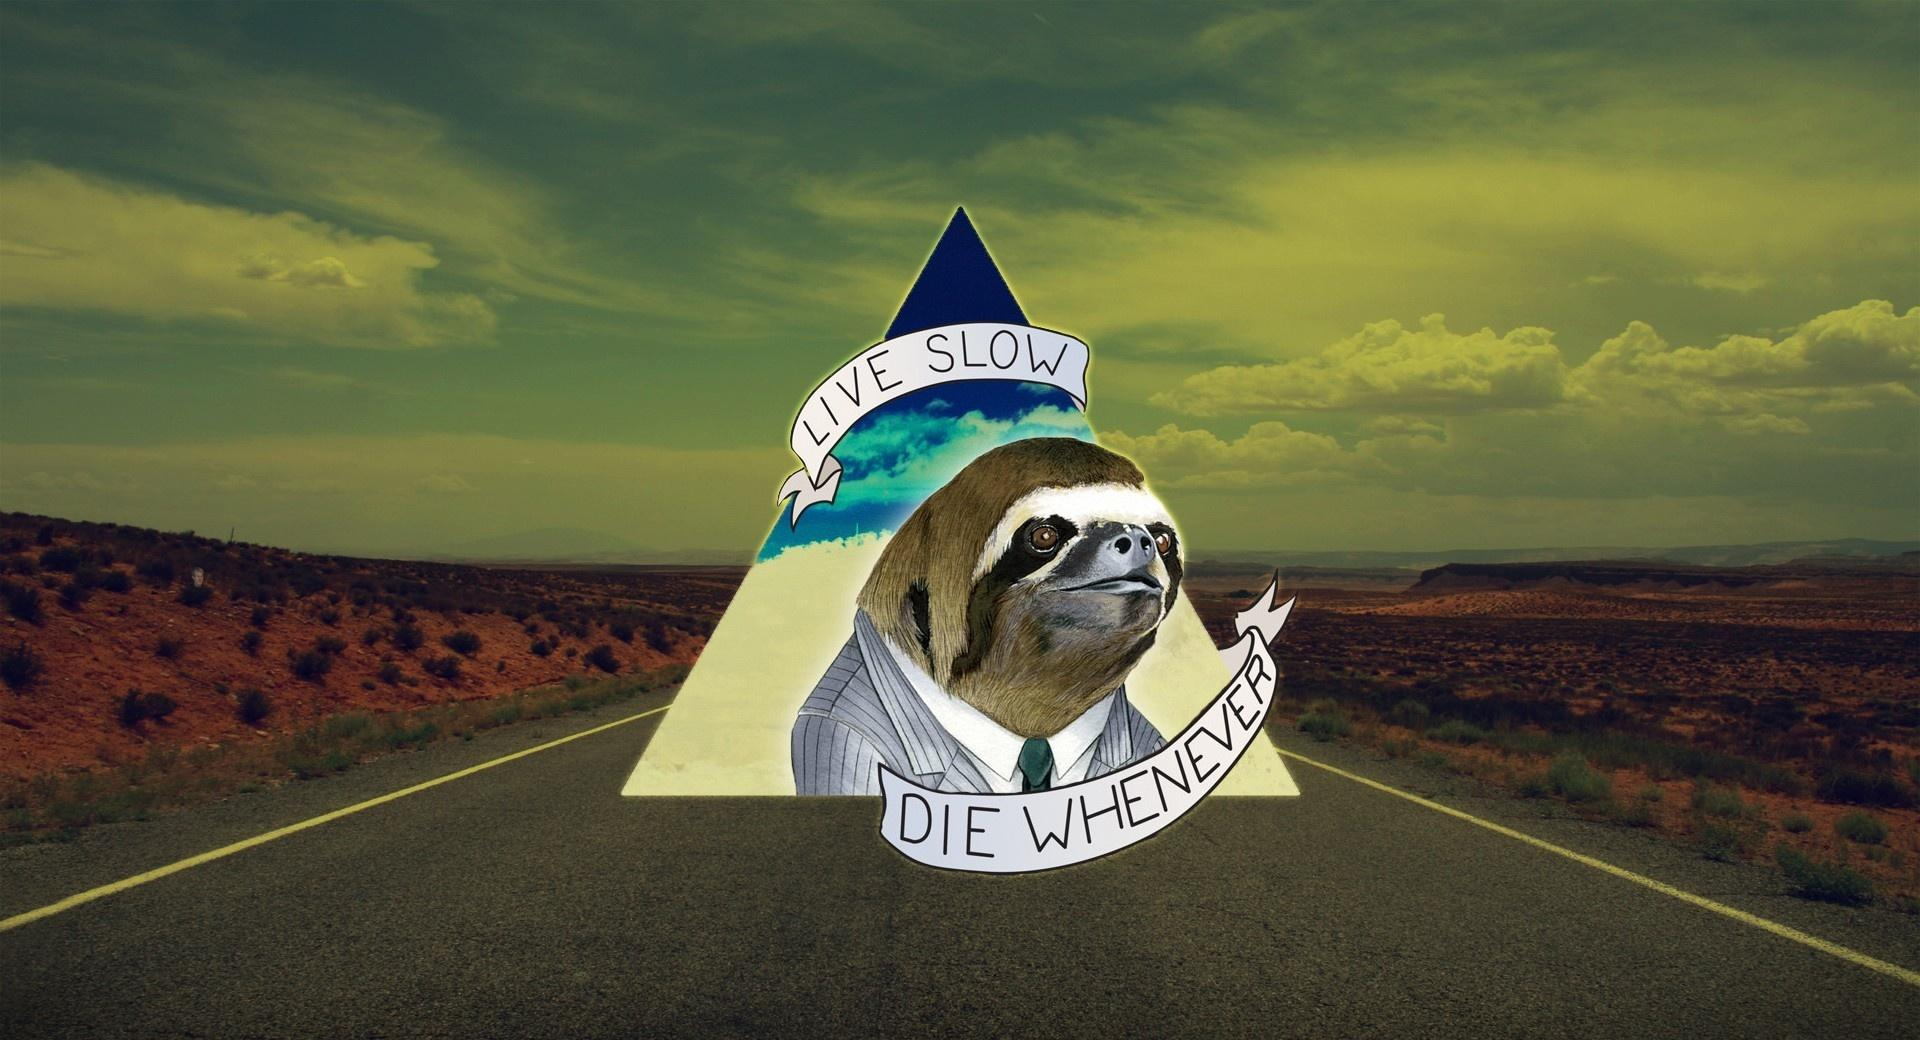 Live Slow Die Whenever wallpapers HD quality